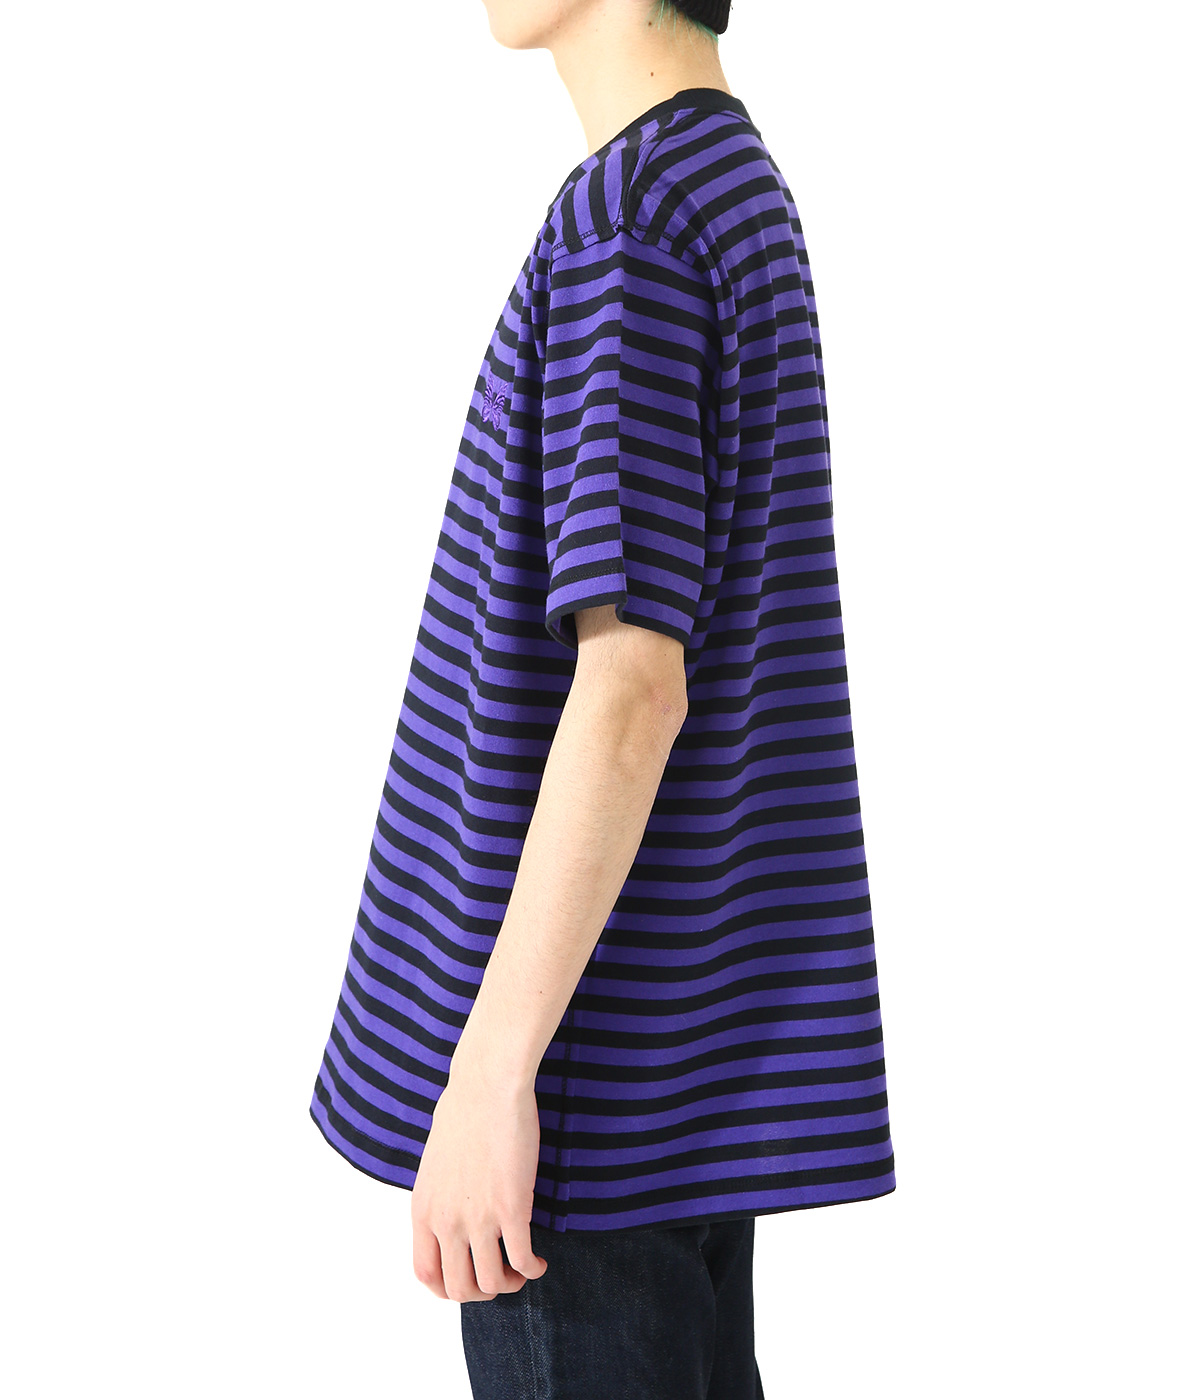 S/S Papillon Emb. Tee - Cotton Jersey / Stripe